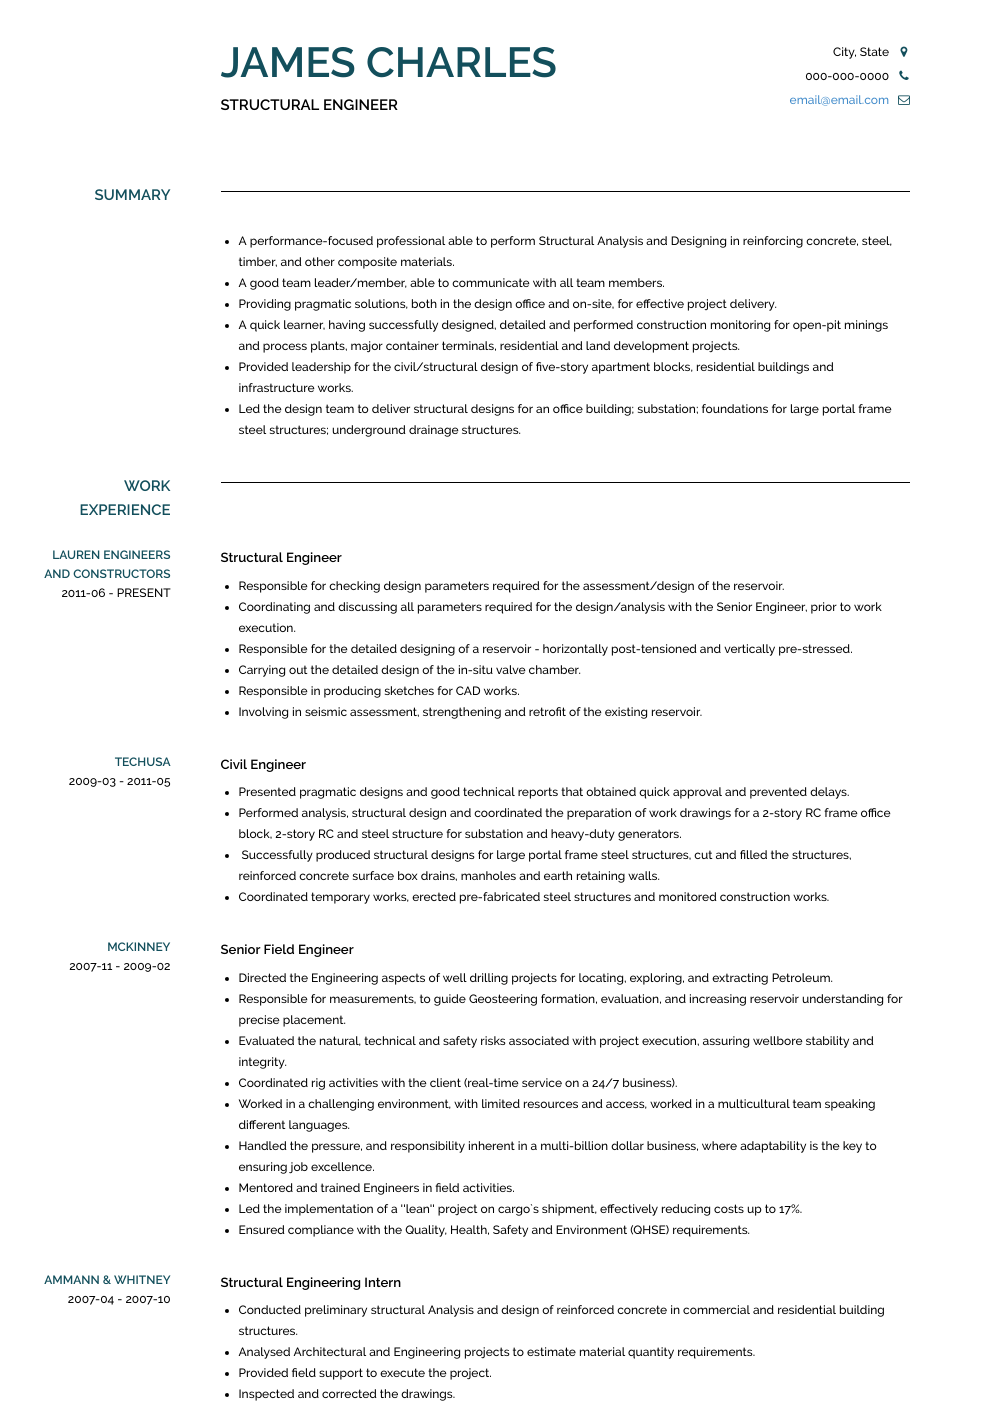 Structural Engineer Resume Samples And Templates Visualcv